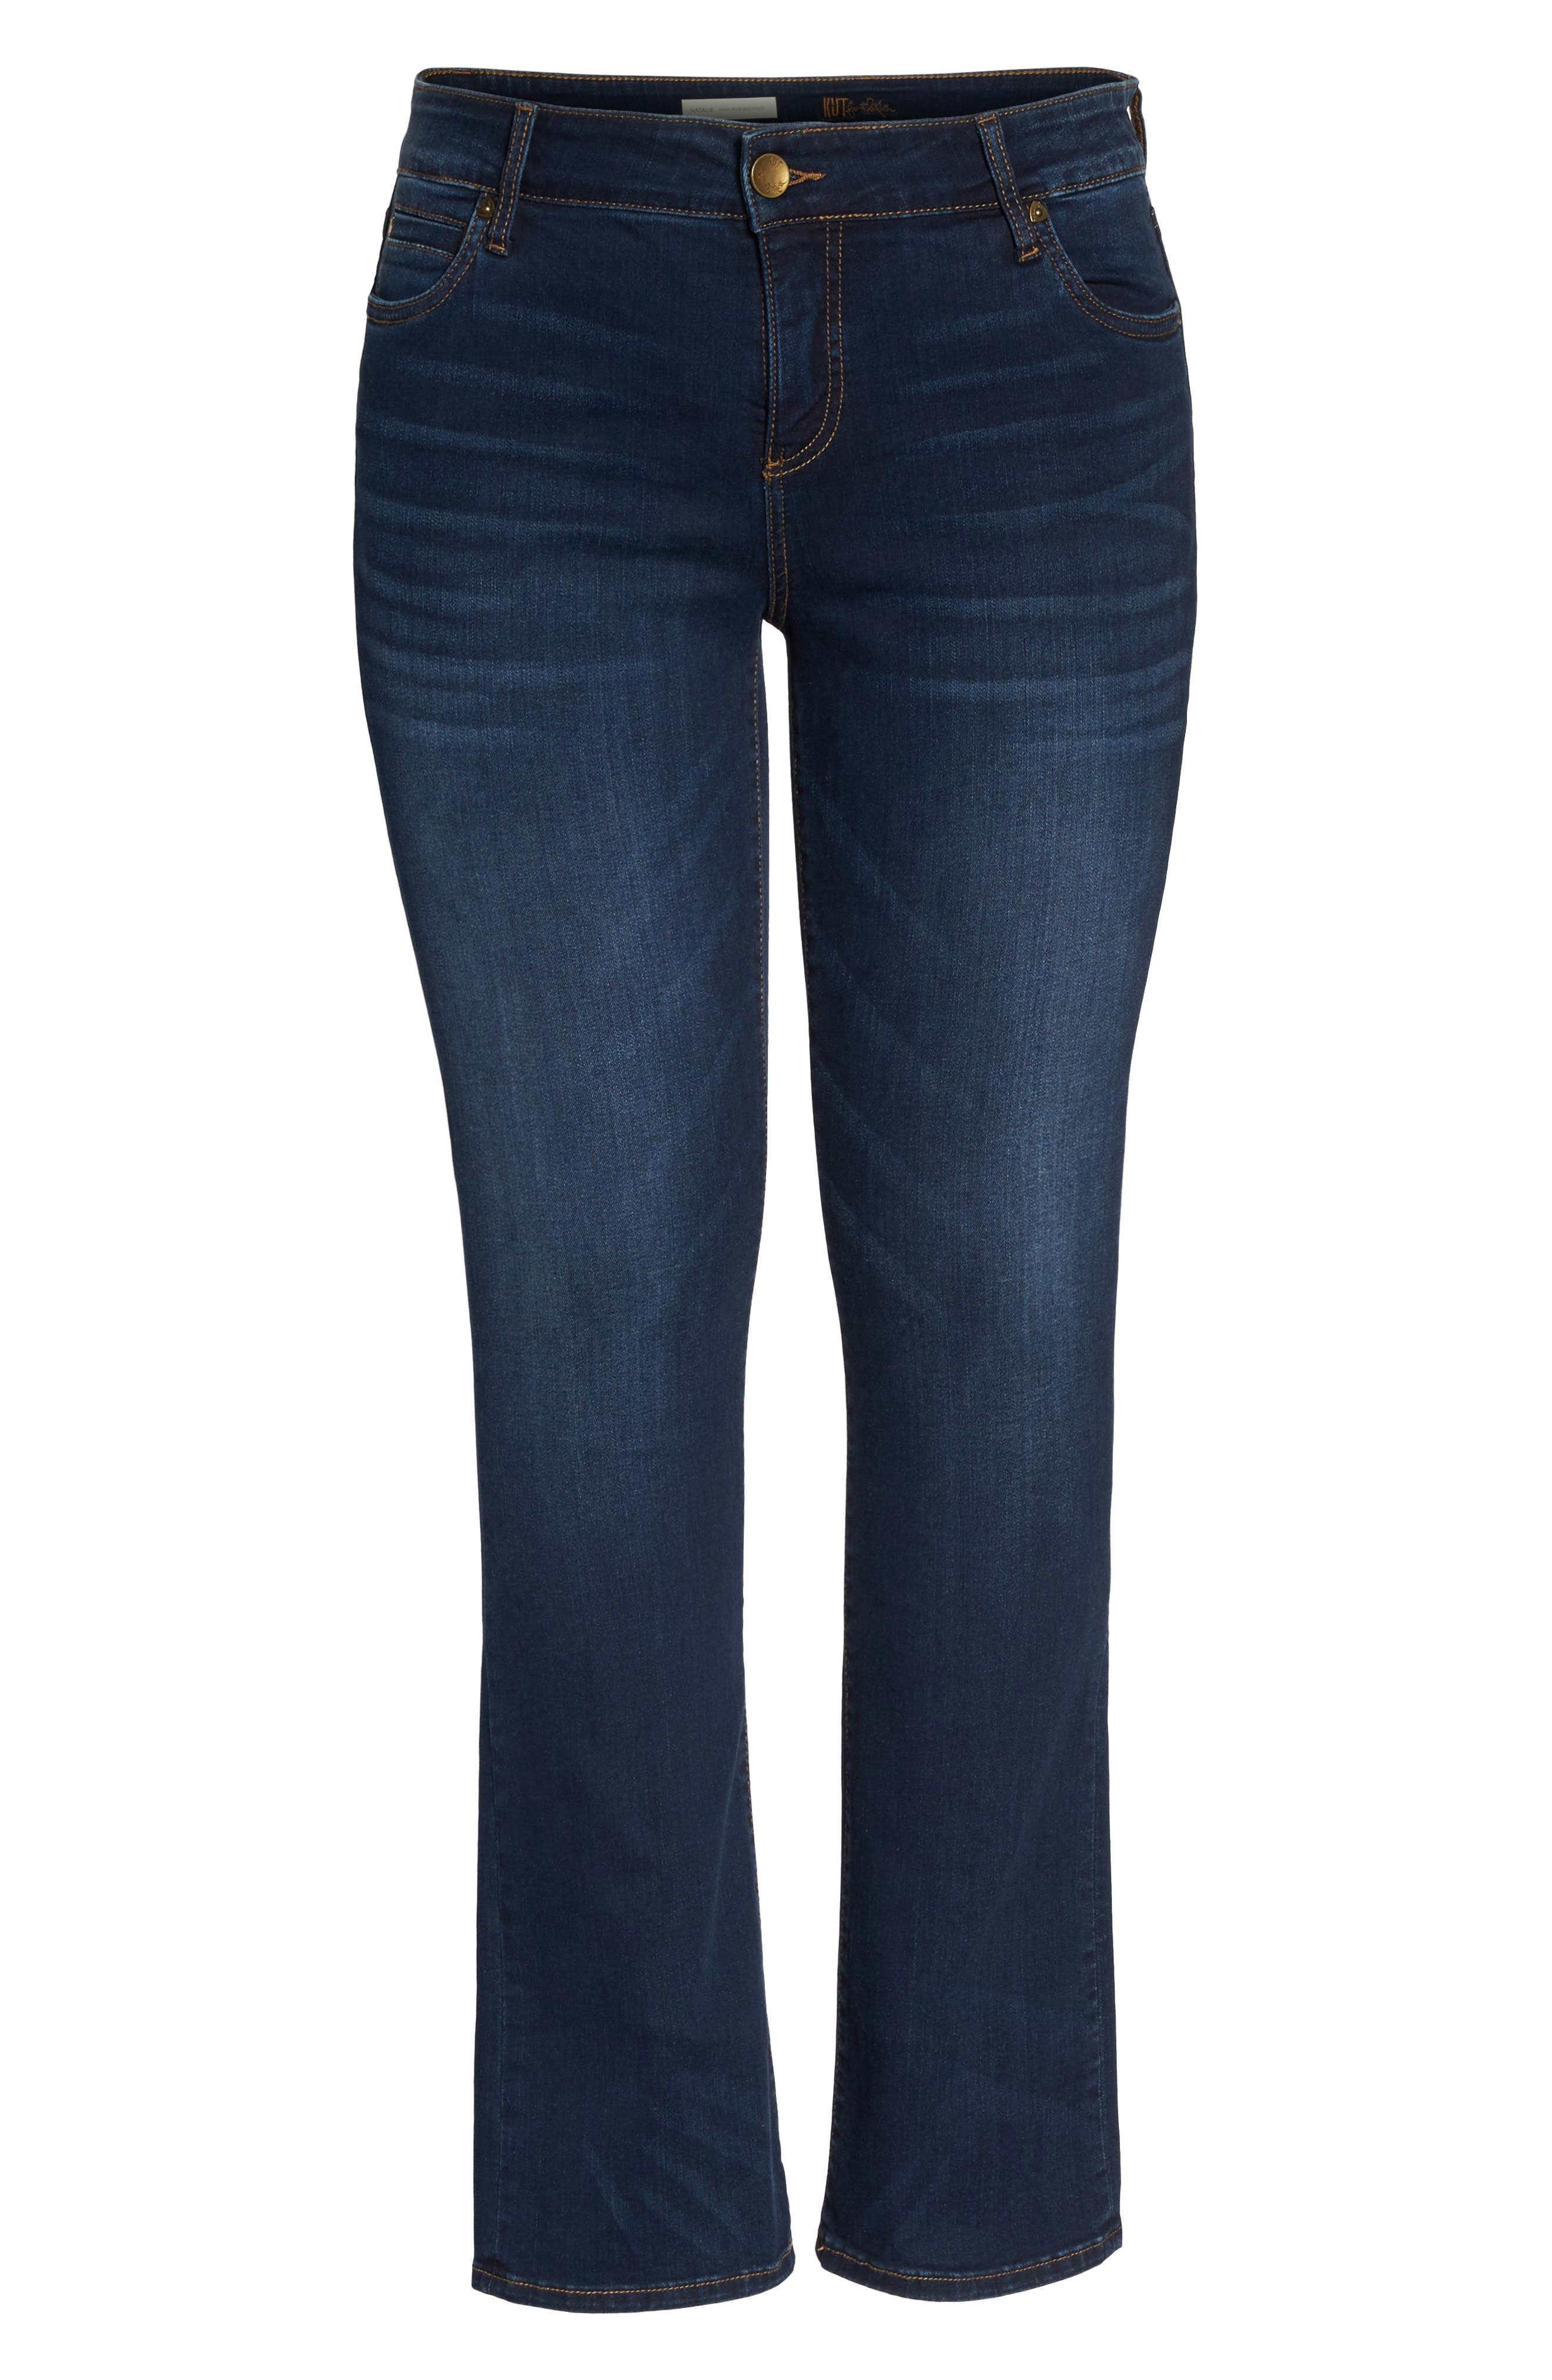 KUT FROM THE KLOTH, Natalie High Waist Bootcut Jeans, Alternate thumbnail 6, color, CLOSENESS W/ EURO BASE WASH